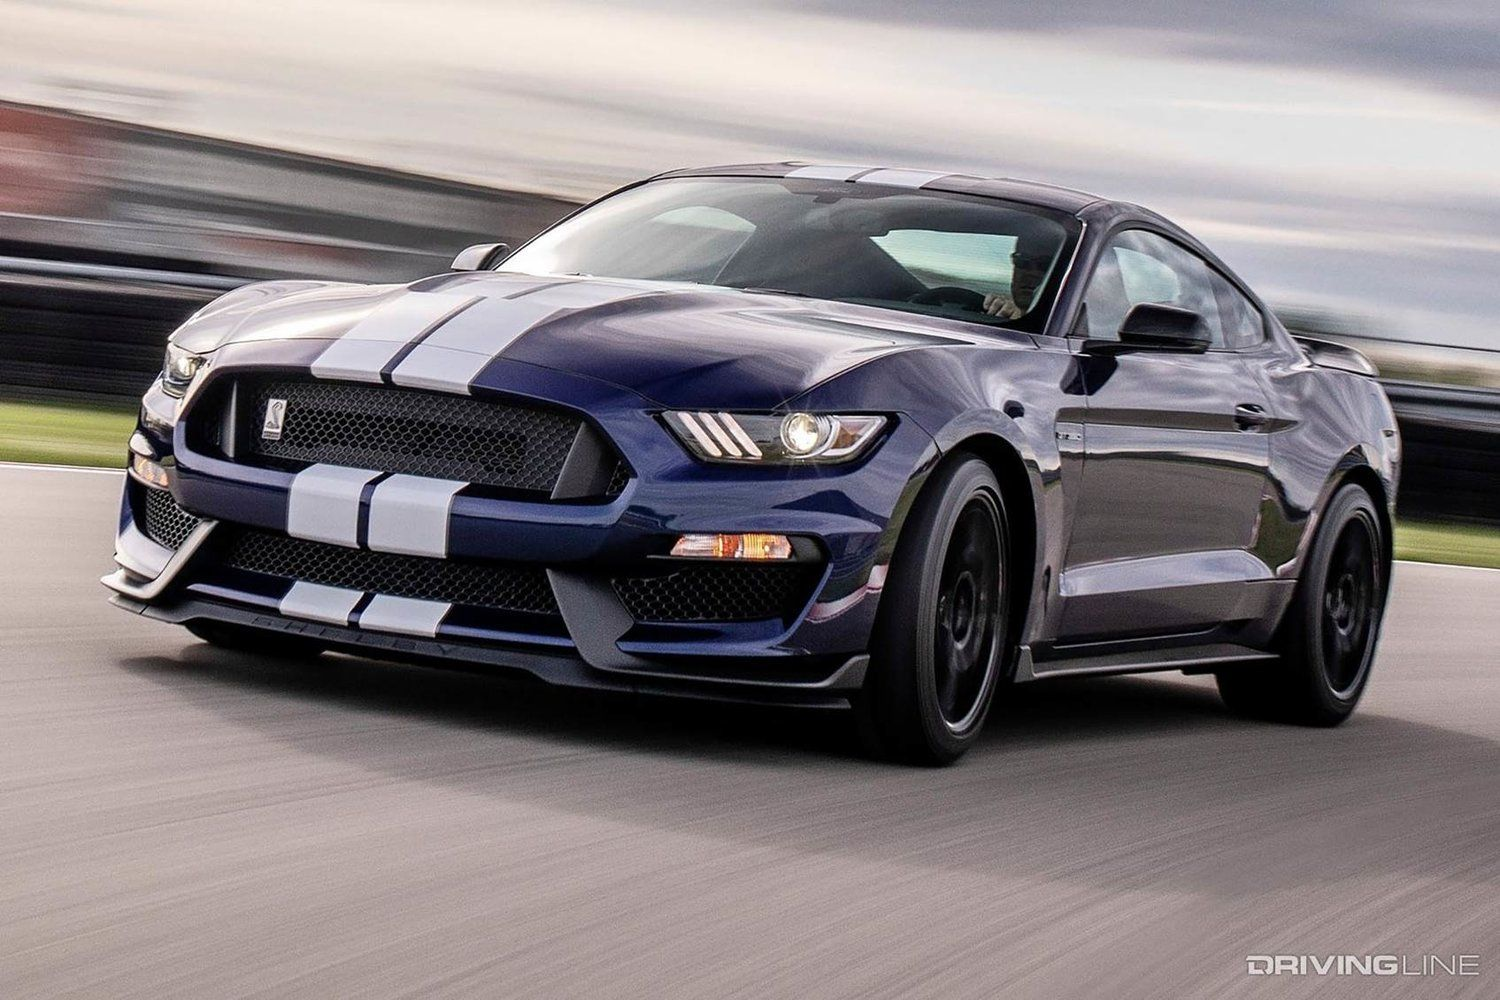 May 30 Three Pedal Club: 5 New Performance Cars that are Manual